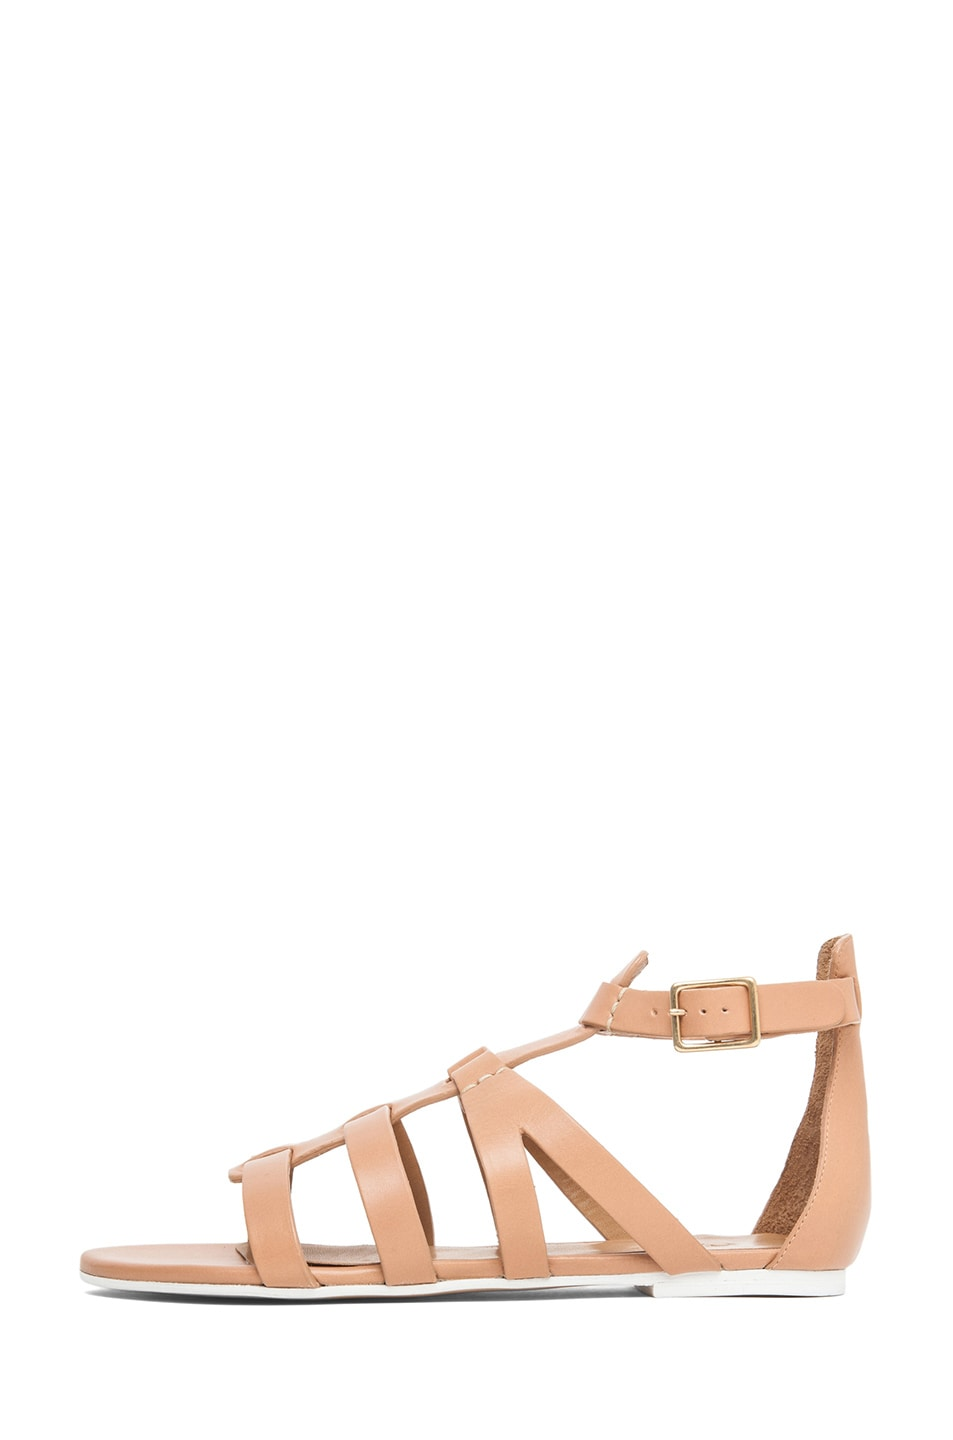 Image 1 of Chloe Gladiator Sandal in Nude